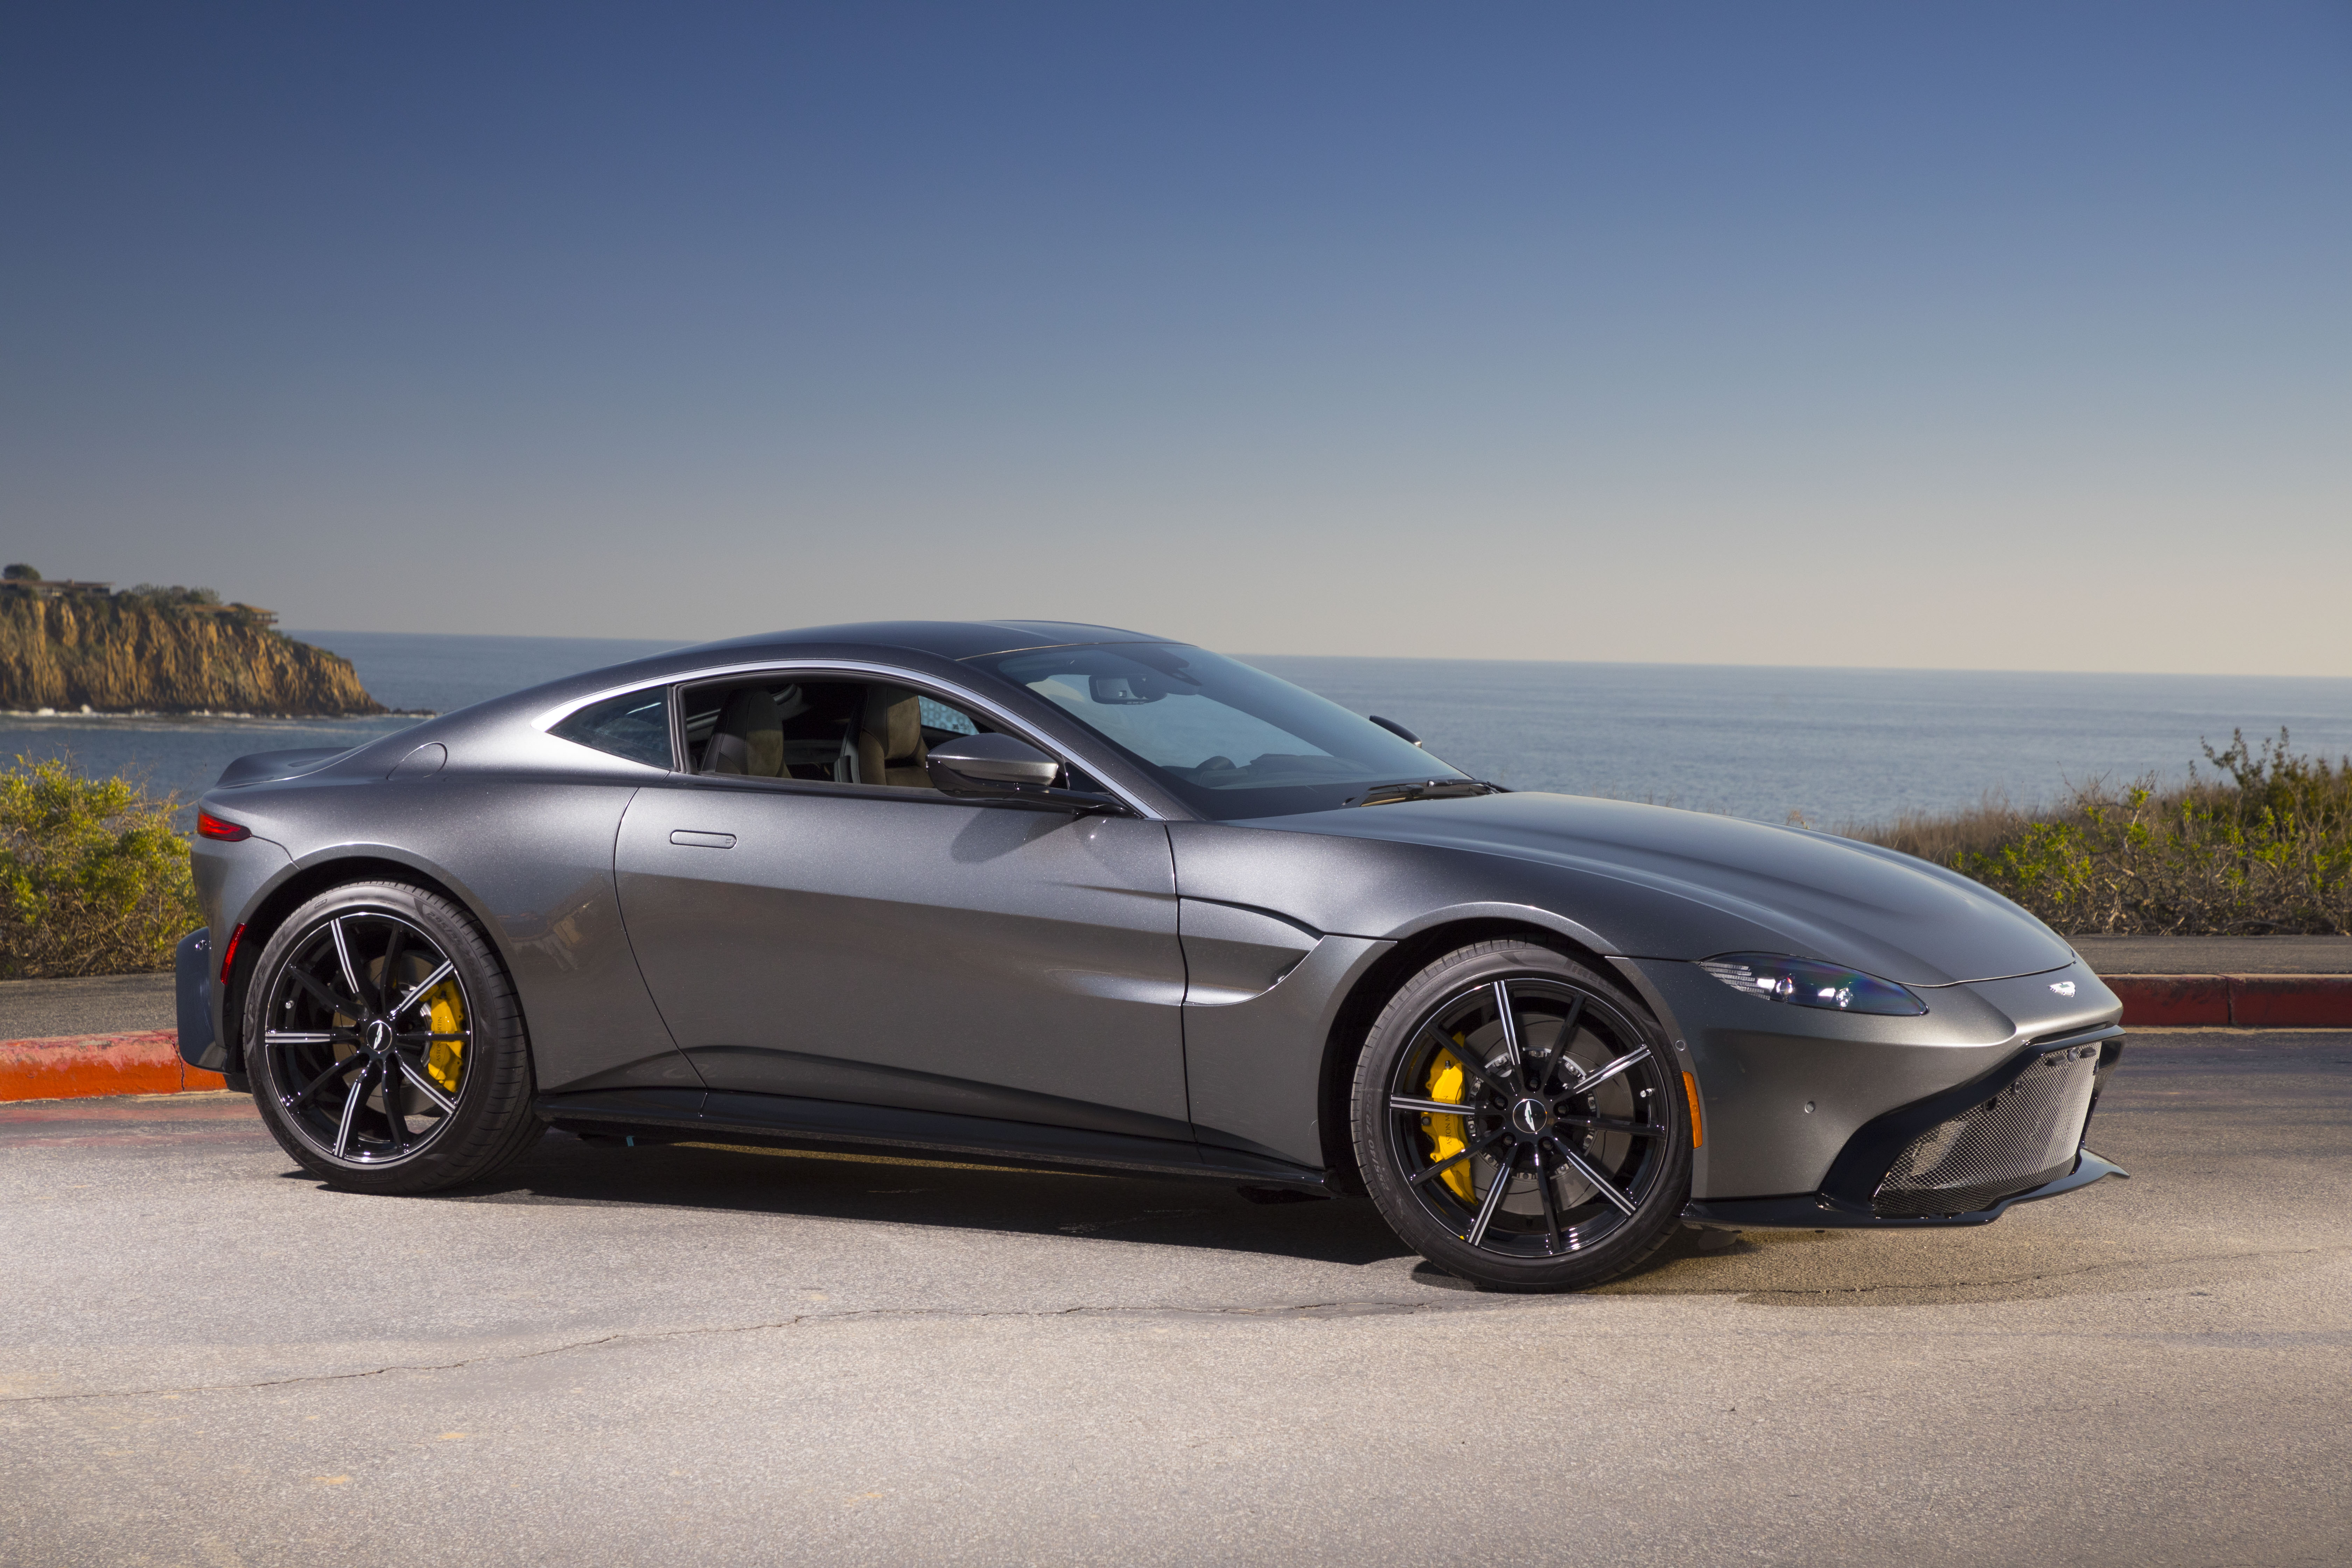 15 New Aston Martin Cars Suvs In Stock Aston Martin Newport Beach